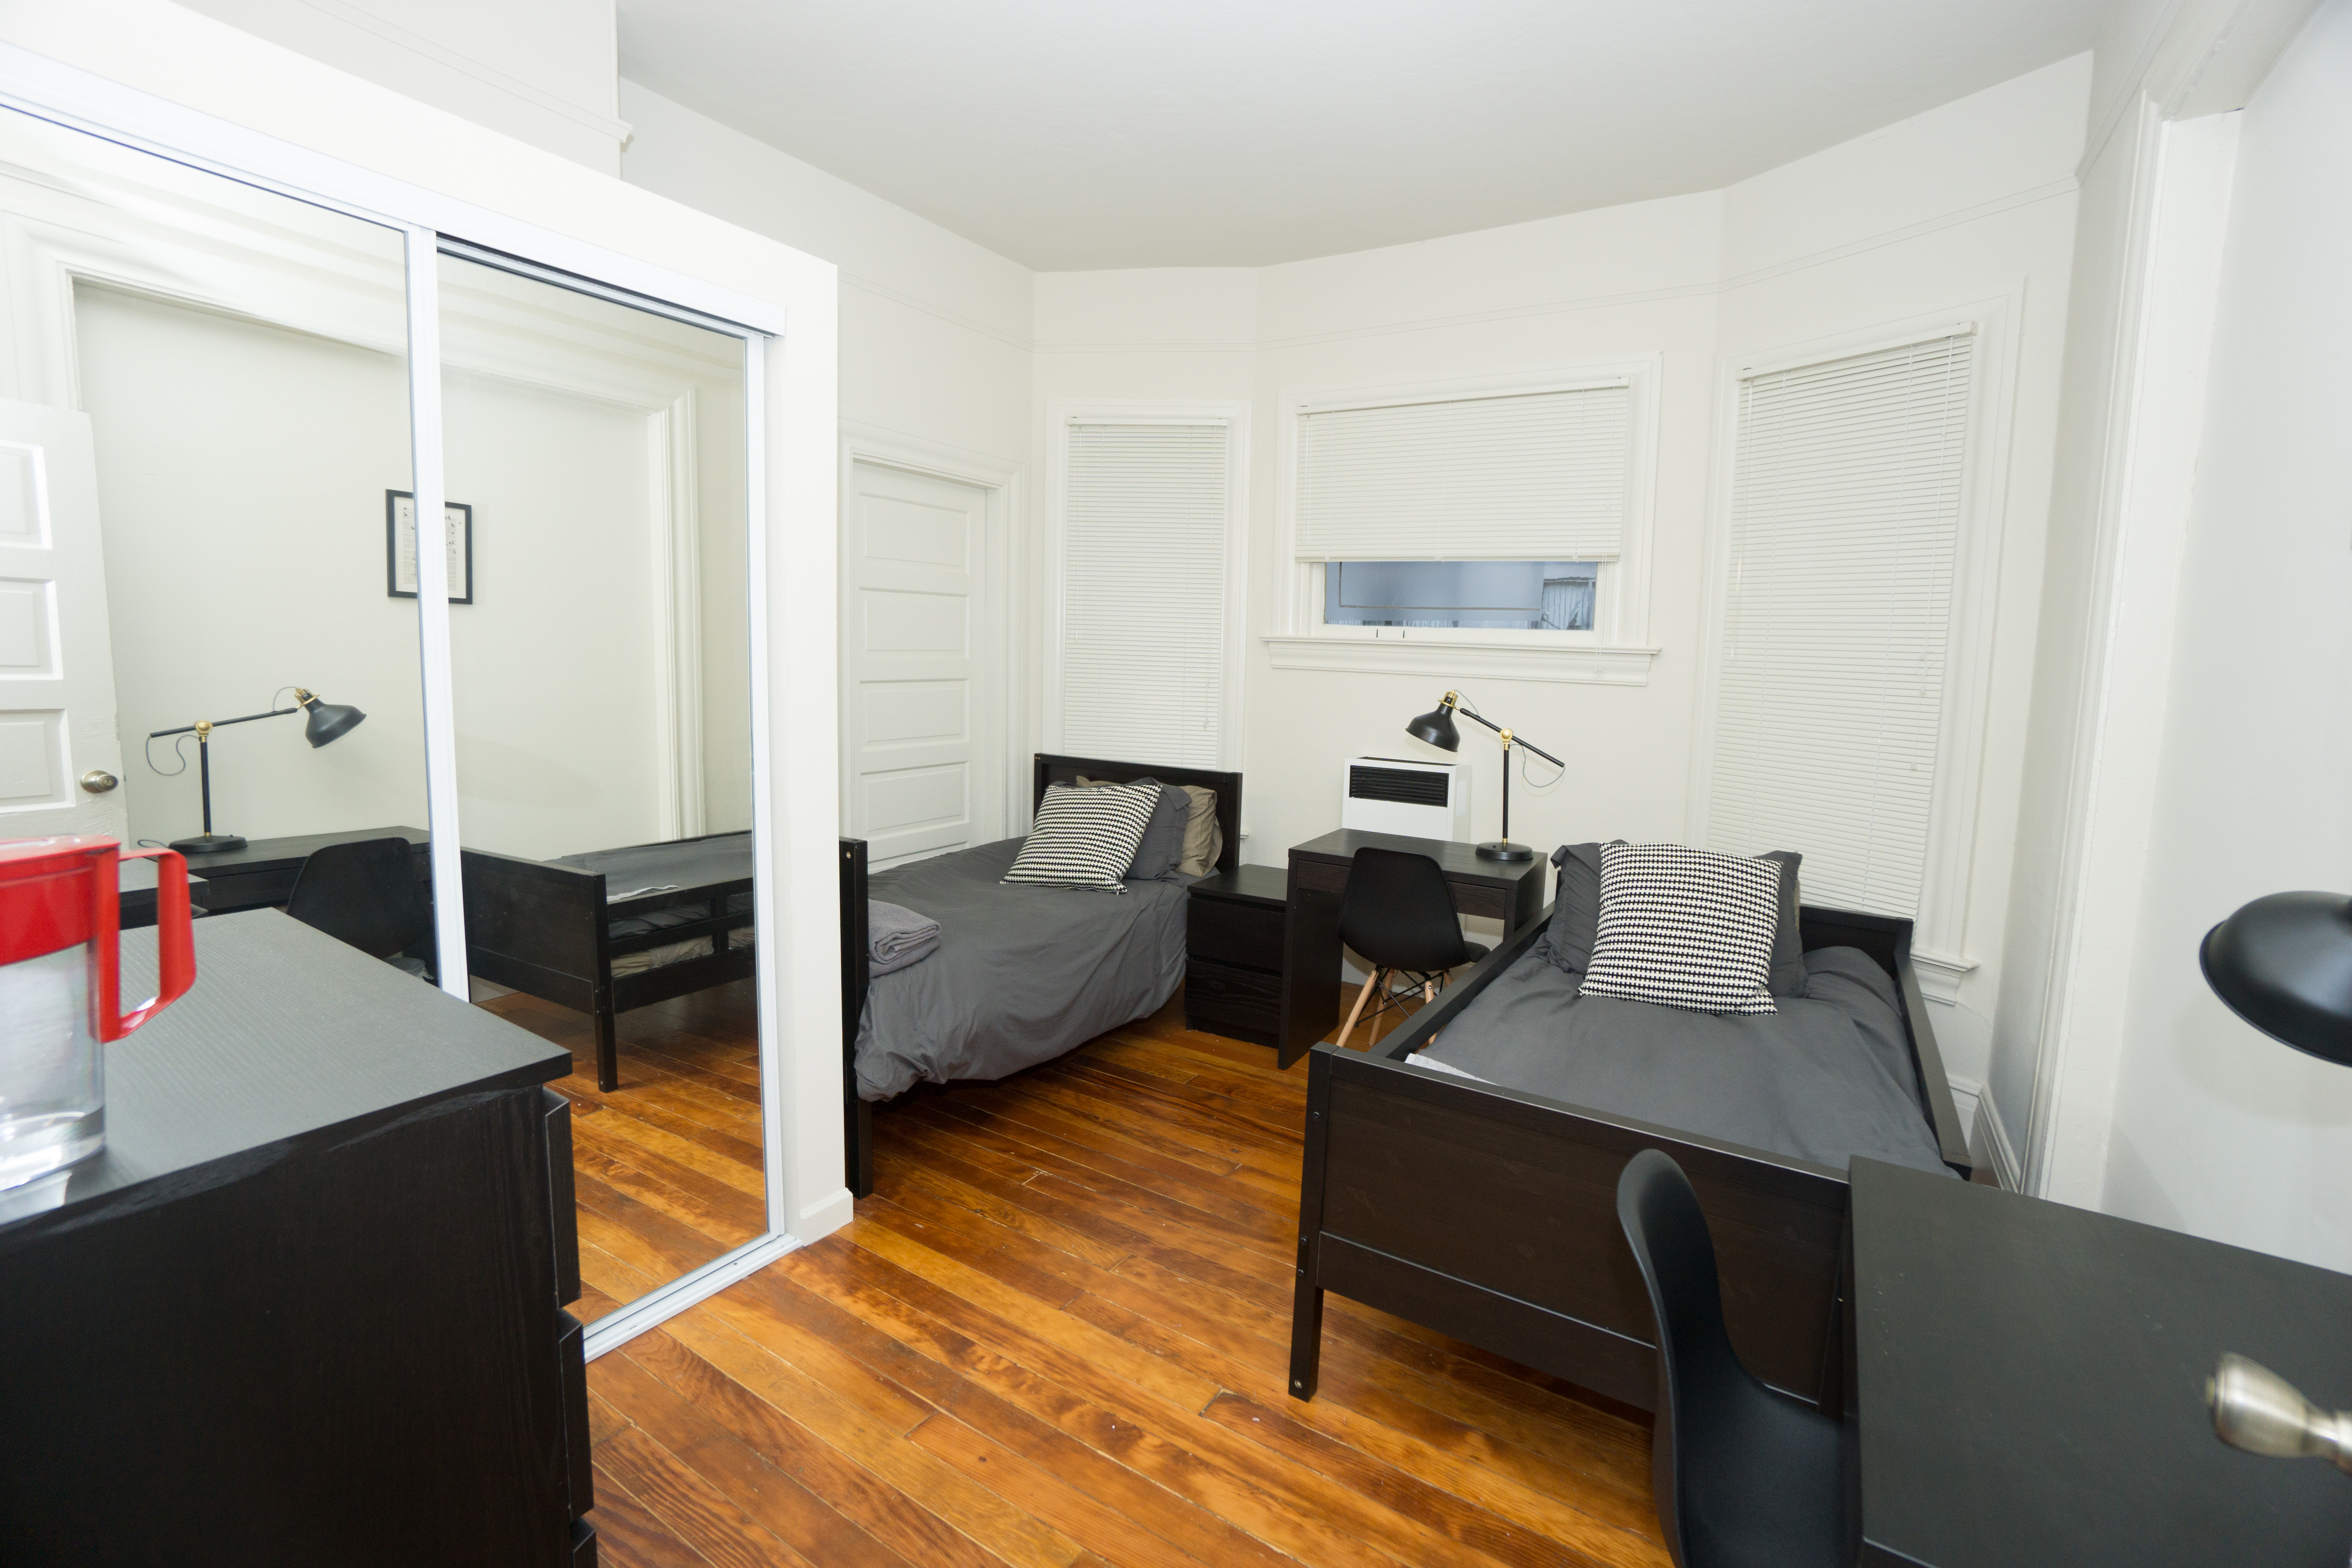 Bancroft House: Room w/ 2 beds close to Bart & UCB